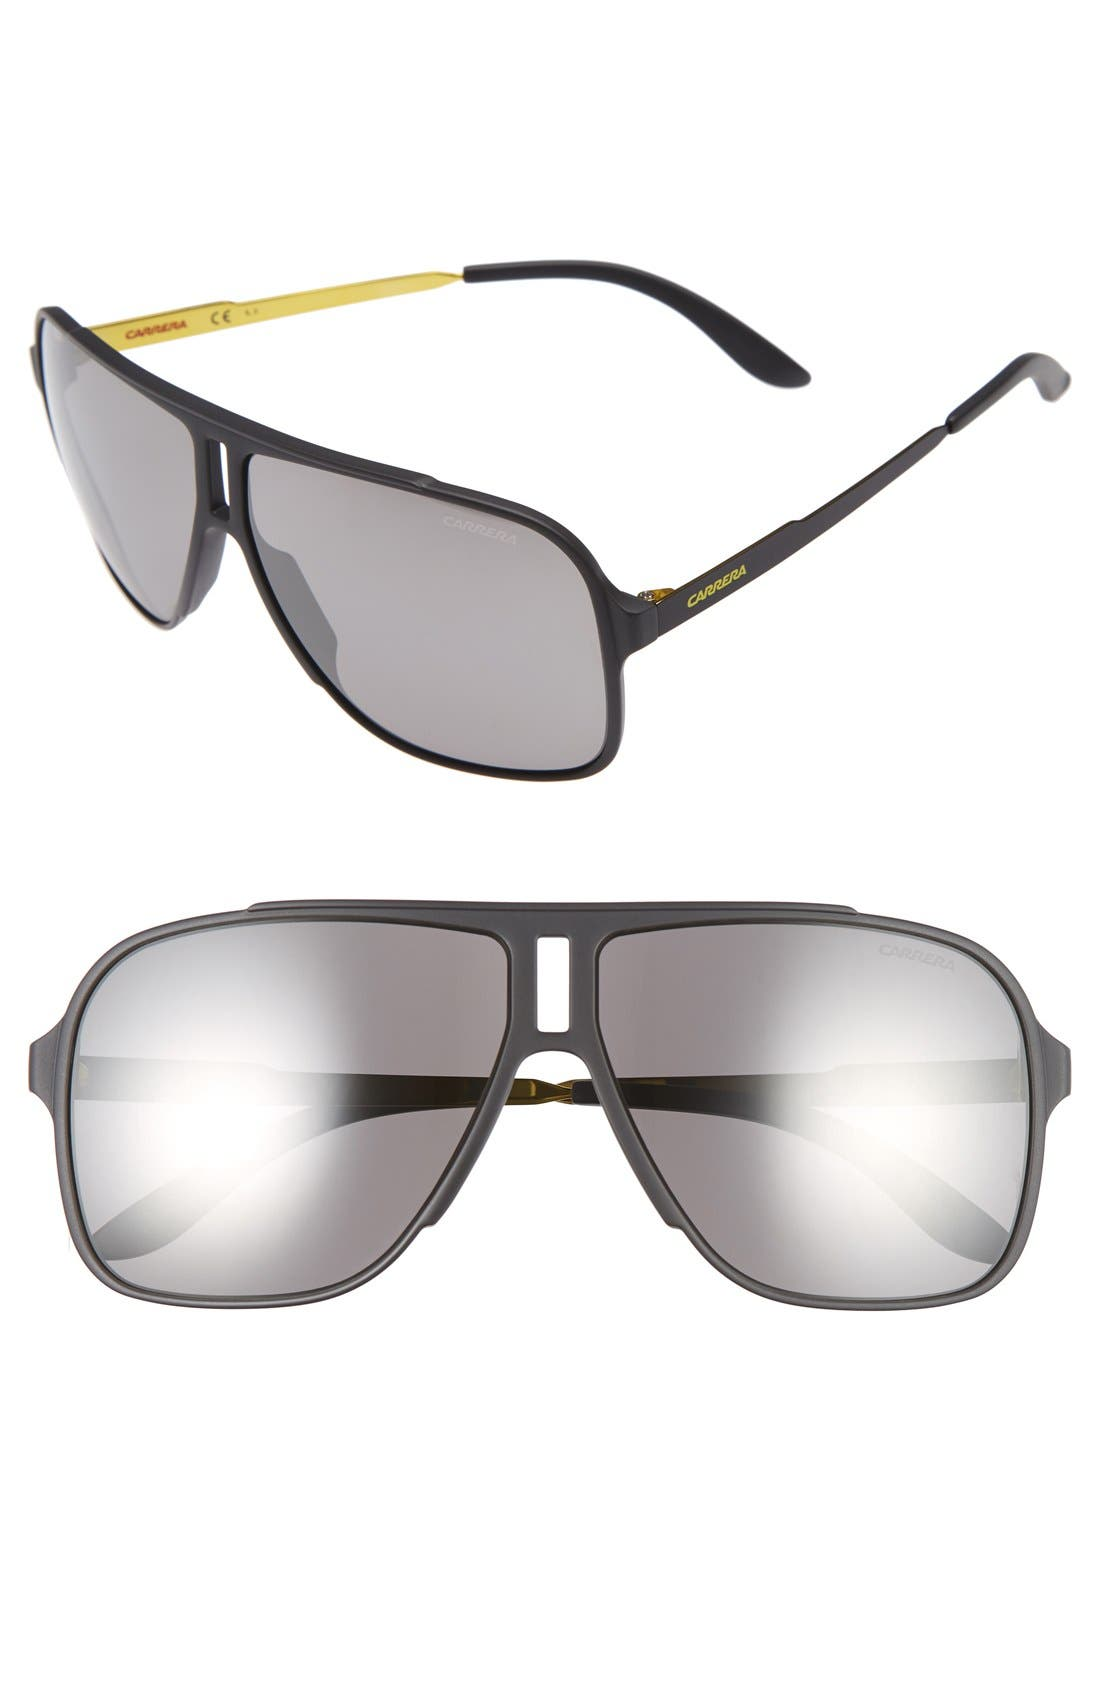 Alternate Image 1 Selected - Carrera Eyewear 61mm Sunglasses